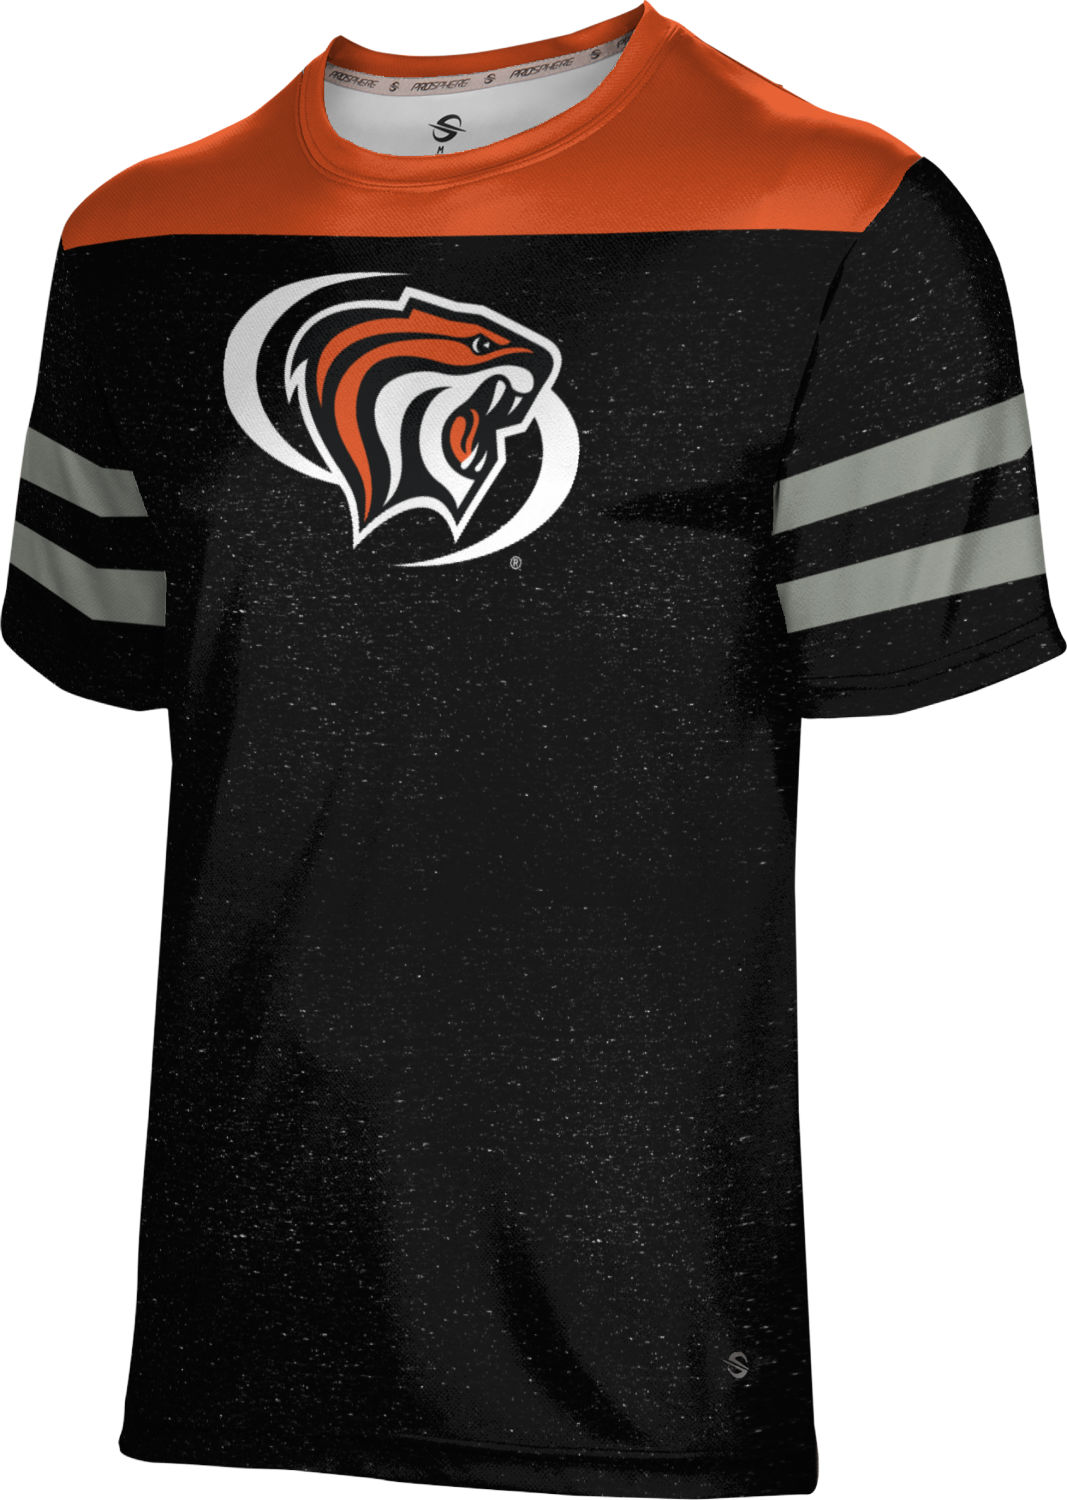 ProSphere Boys' University of the Pacific Gameday Tech Tee